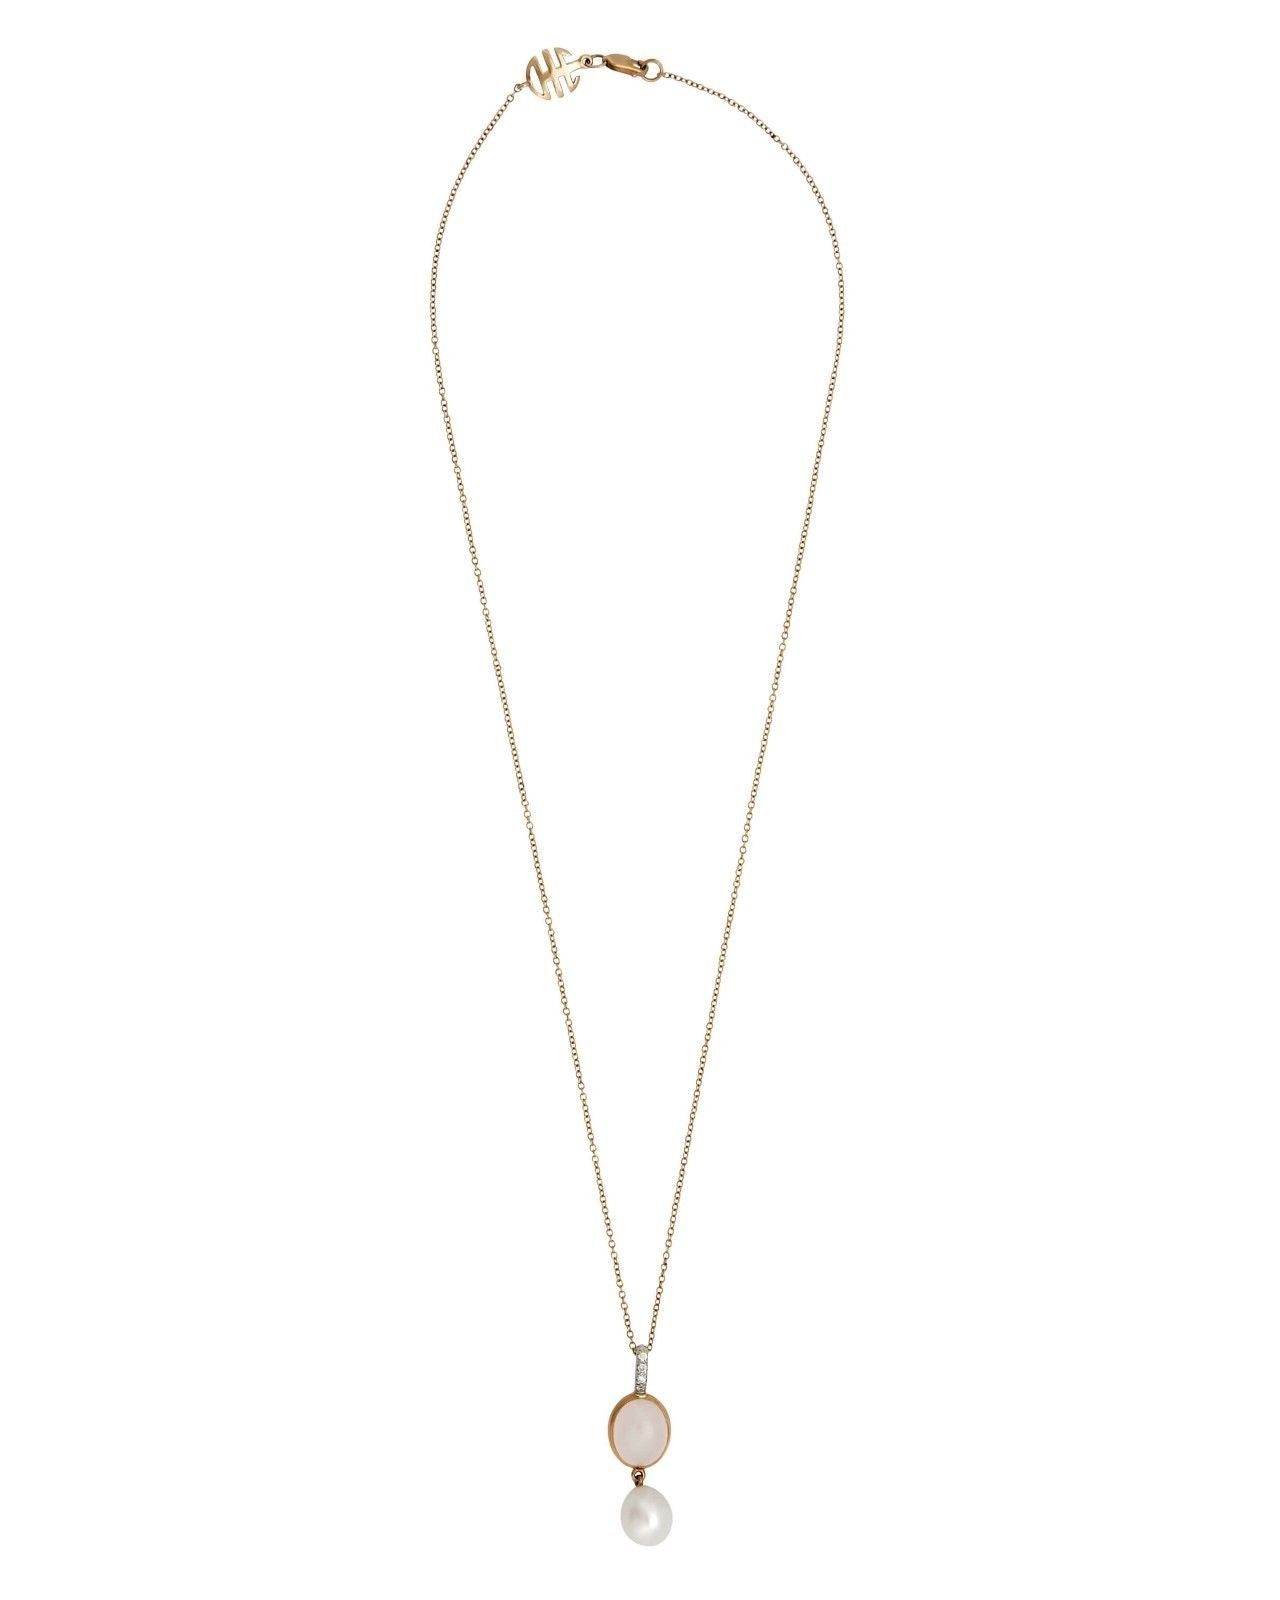 Mimi Milano Pendant In 18K Rose White Gold, Quartz White Pearl P323C1QLB